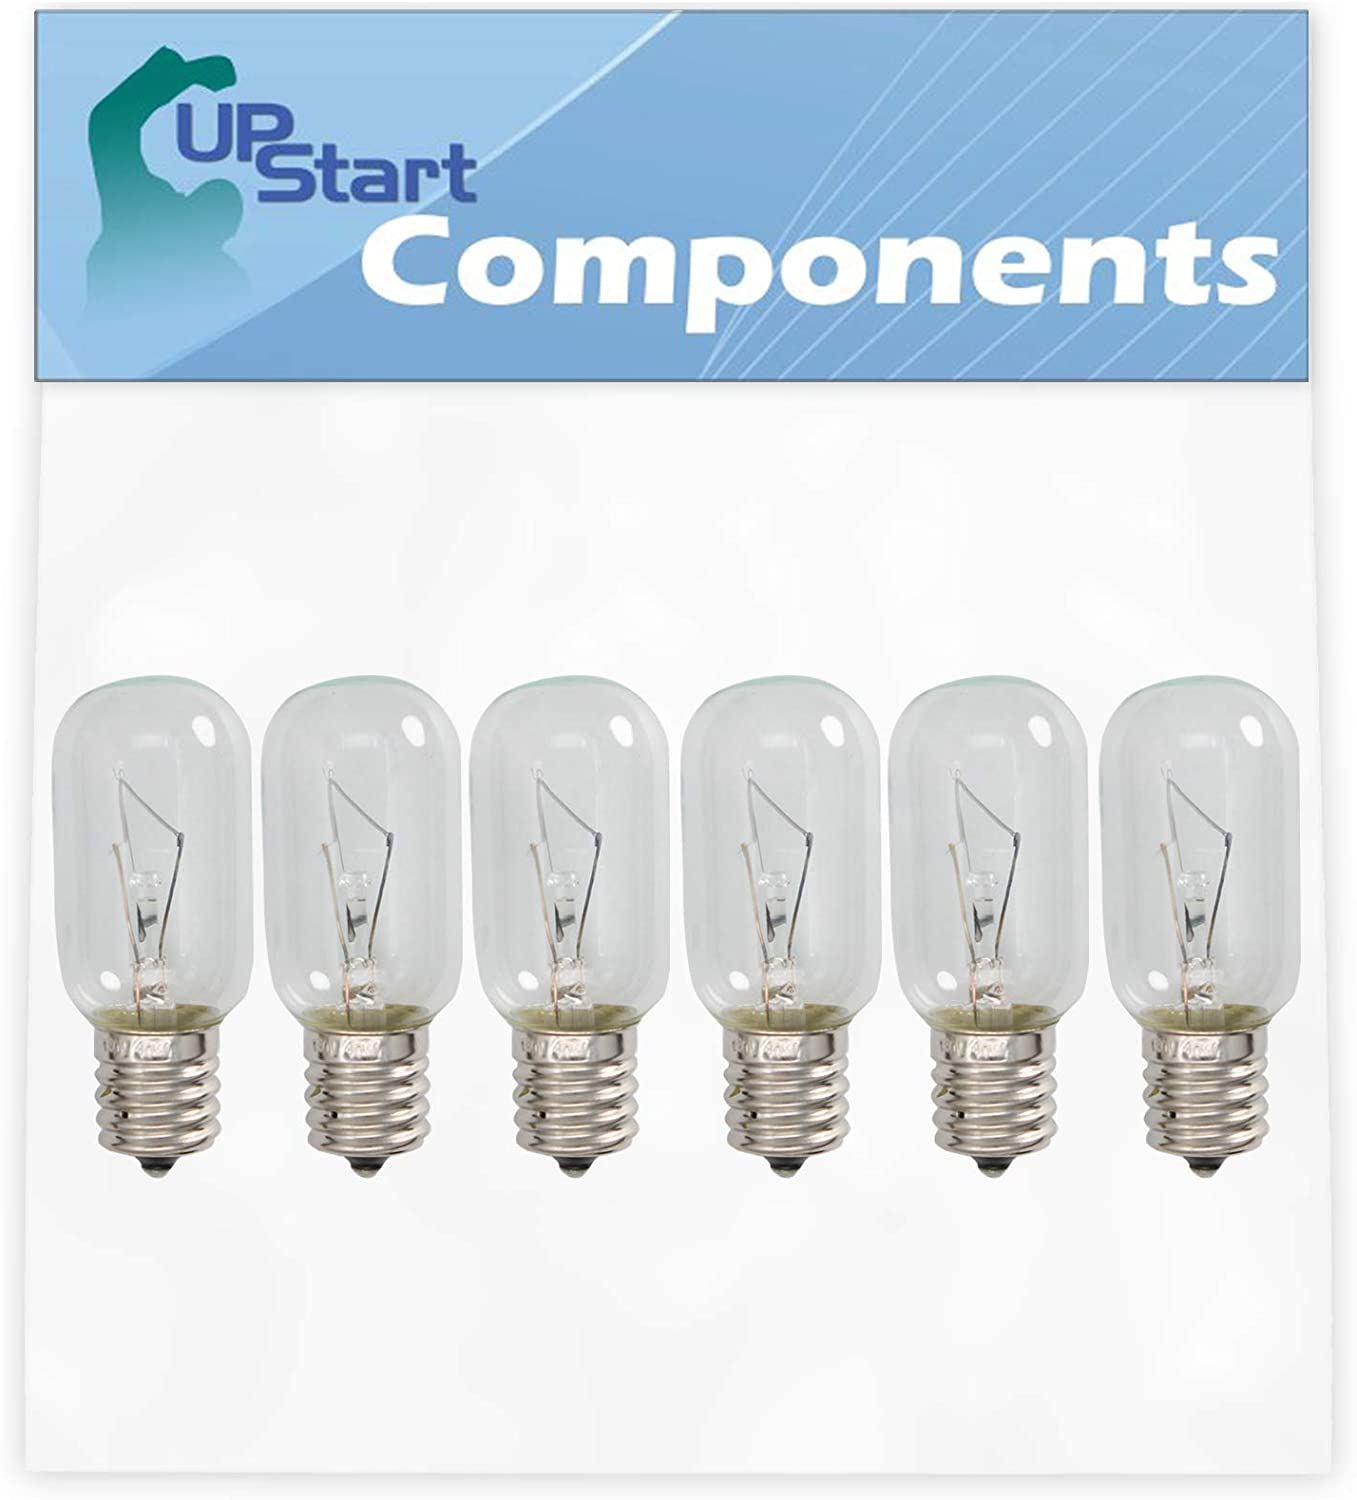 6-Pack 4713-001013 Microwave Light Bulb Replacement for Samsung ME16H702SES/AA-0000 Microwave - Compatible with Samsung 4713-001013 Light Bulb